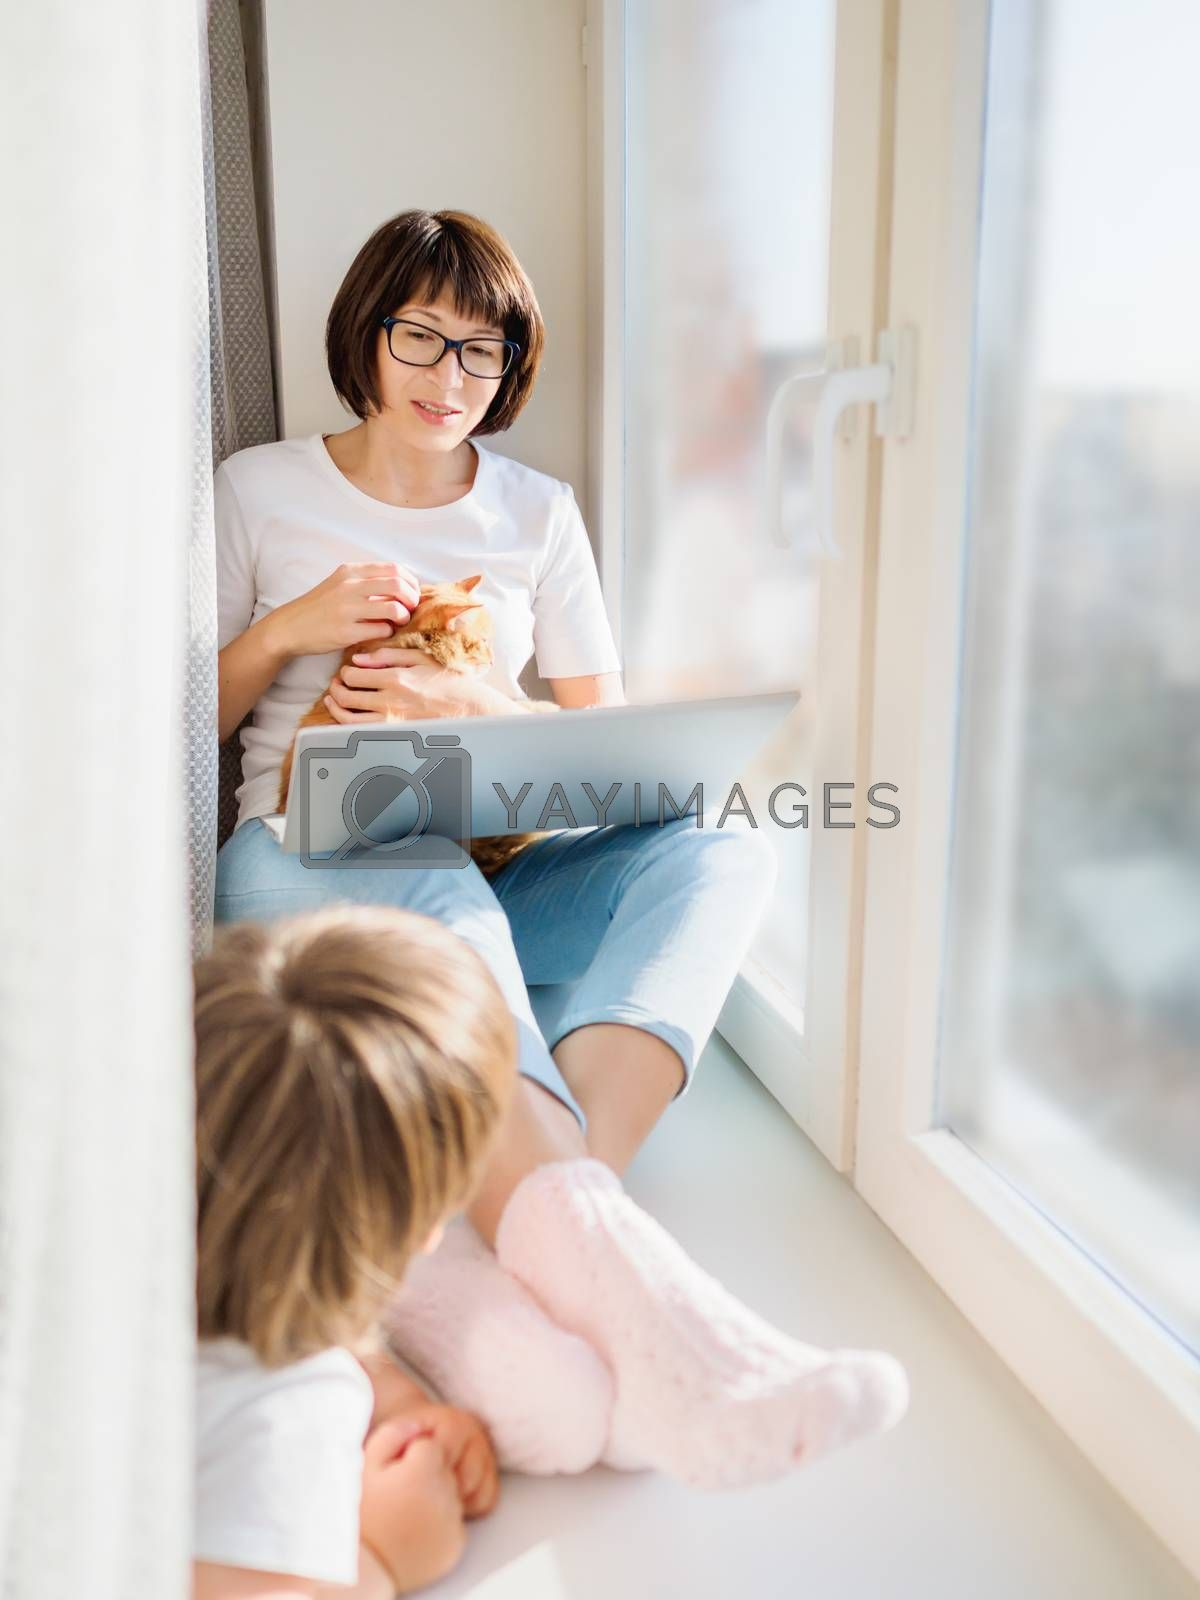 Woman in medical mask remote works from home. She sits on window sill with laptop and cute ginger cat on her knees. Lockdown quarantine because of coronavirus COVID19. Self isolation at home.